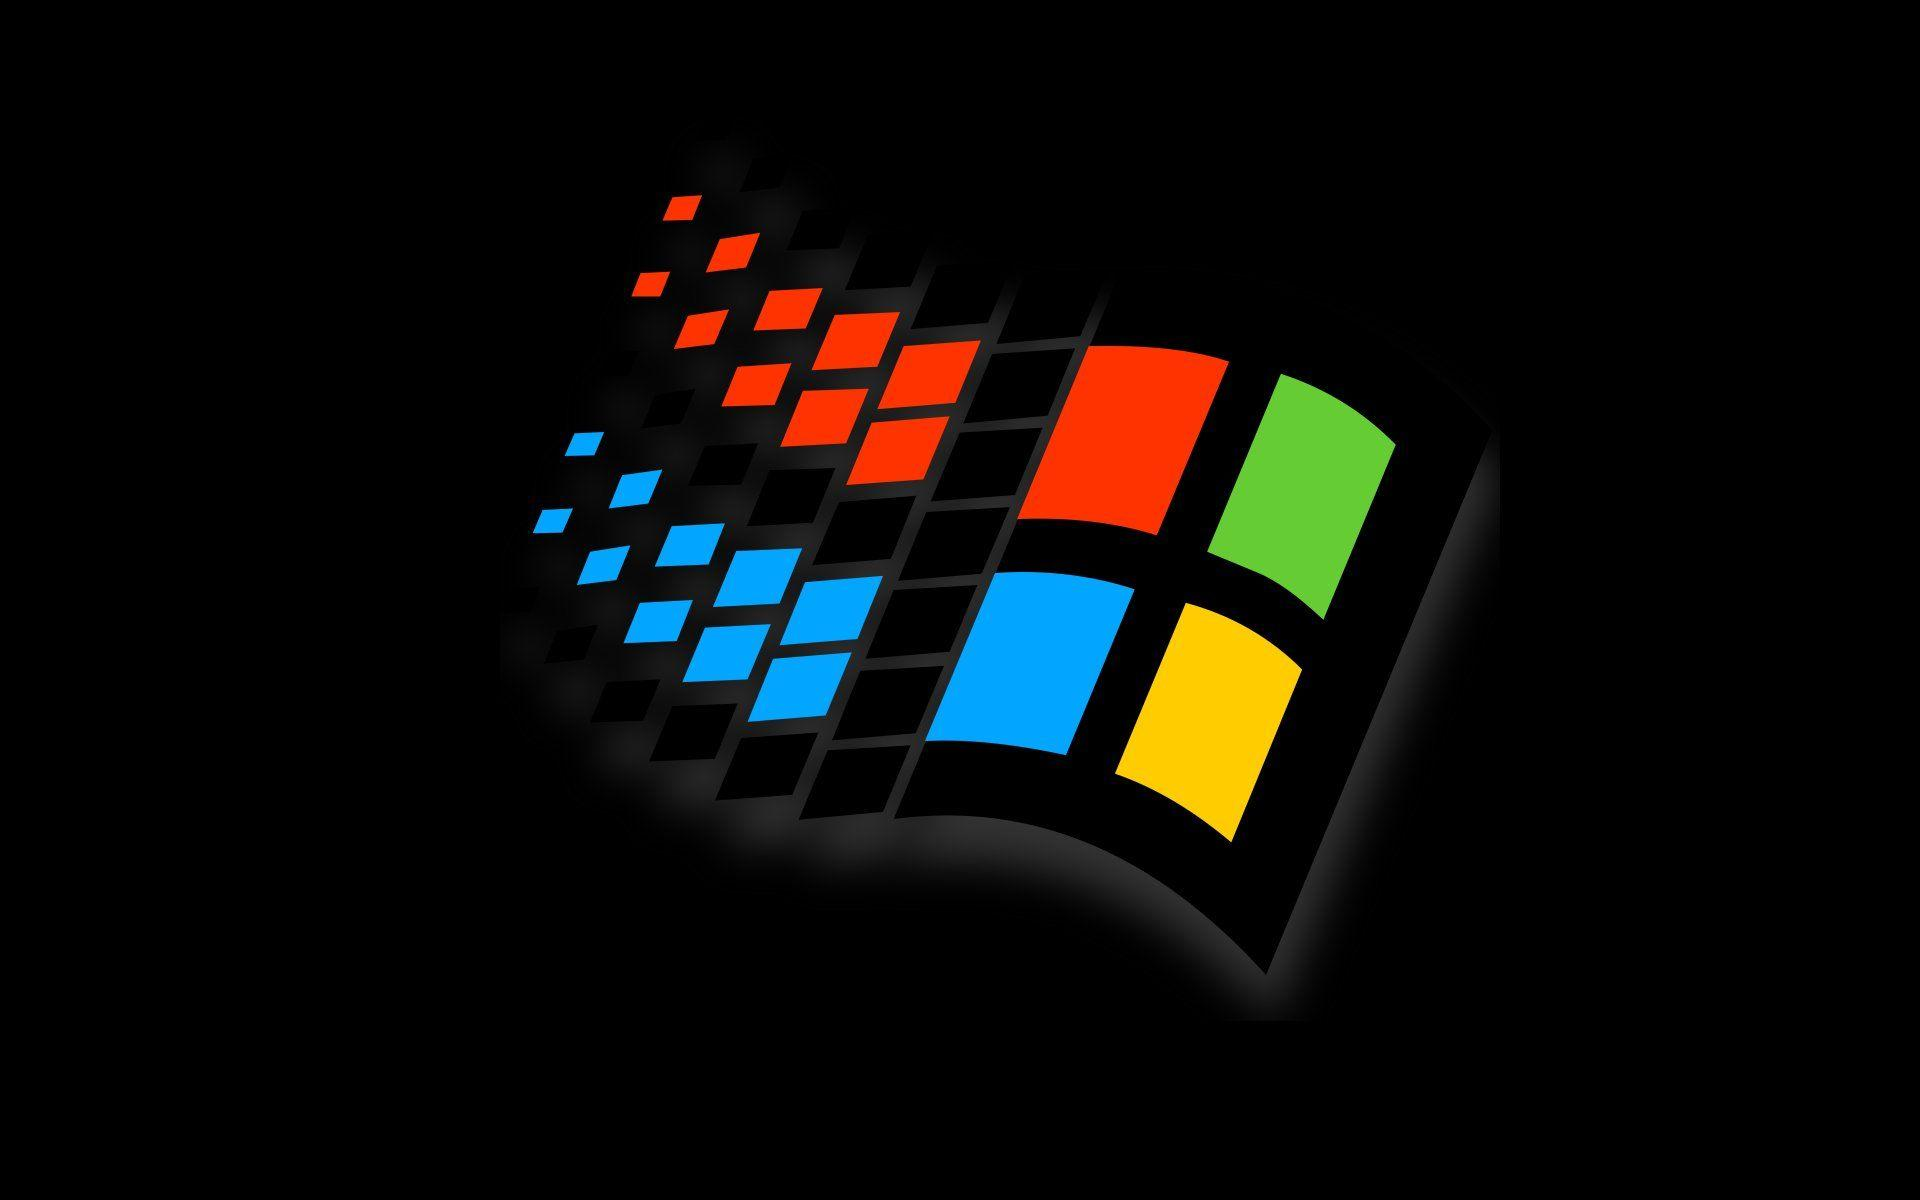 Windows 98 Wallpapers